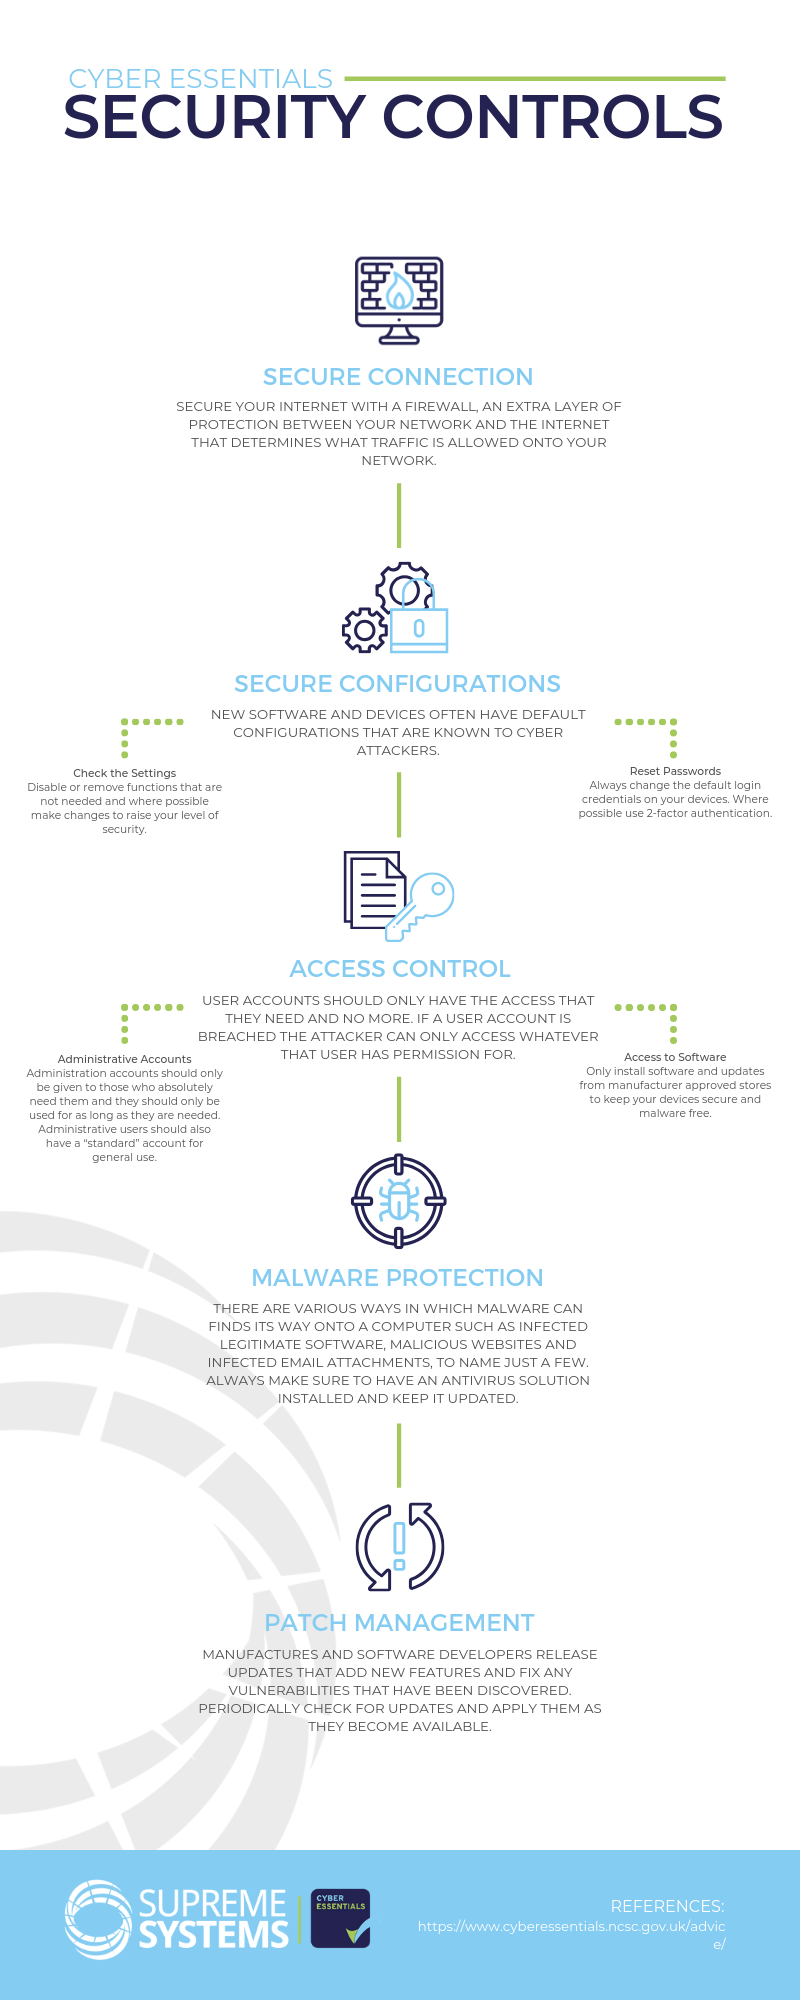 Cyber Essentials Security Controls Infographic